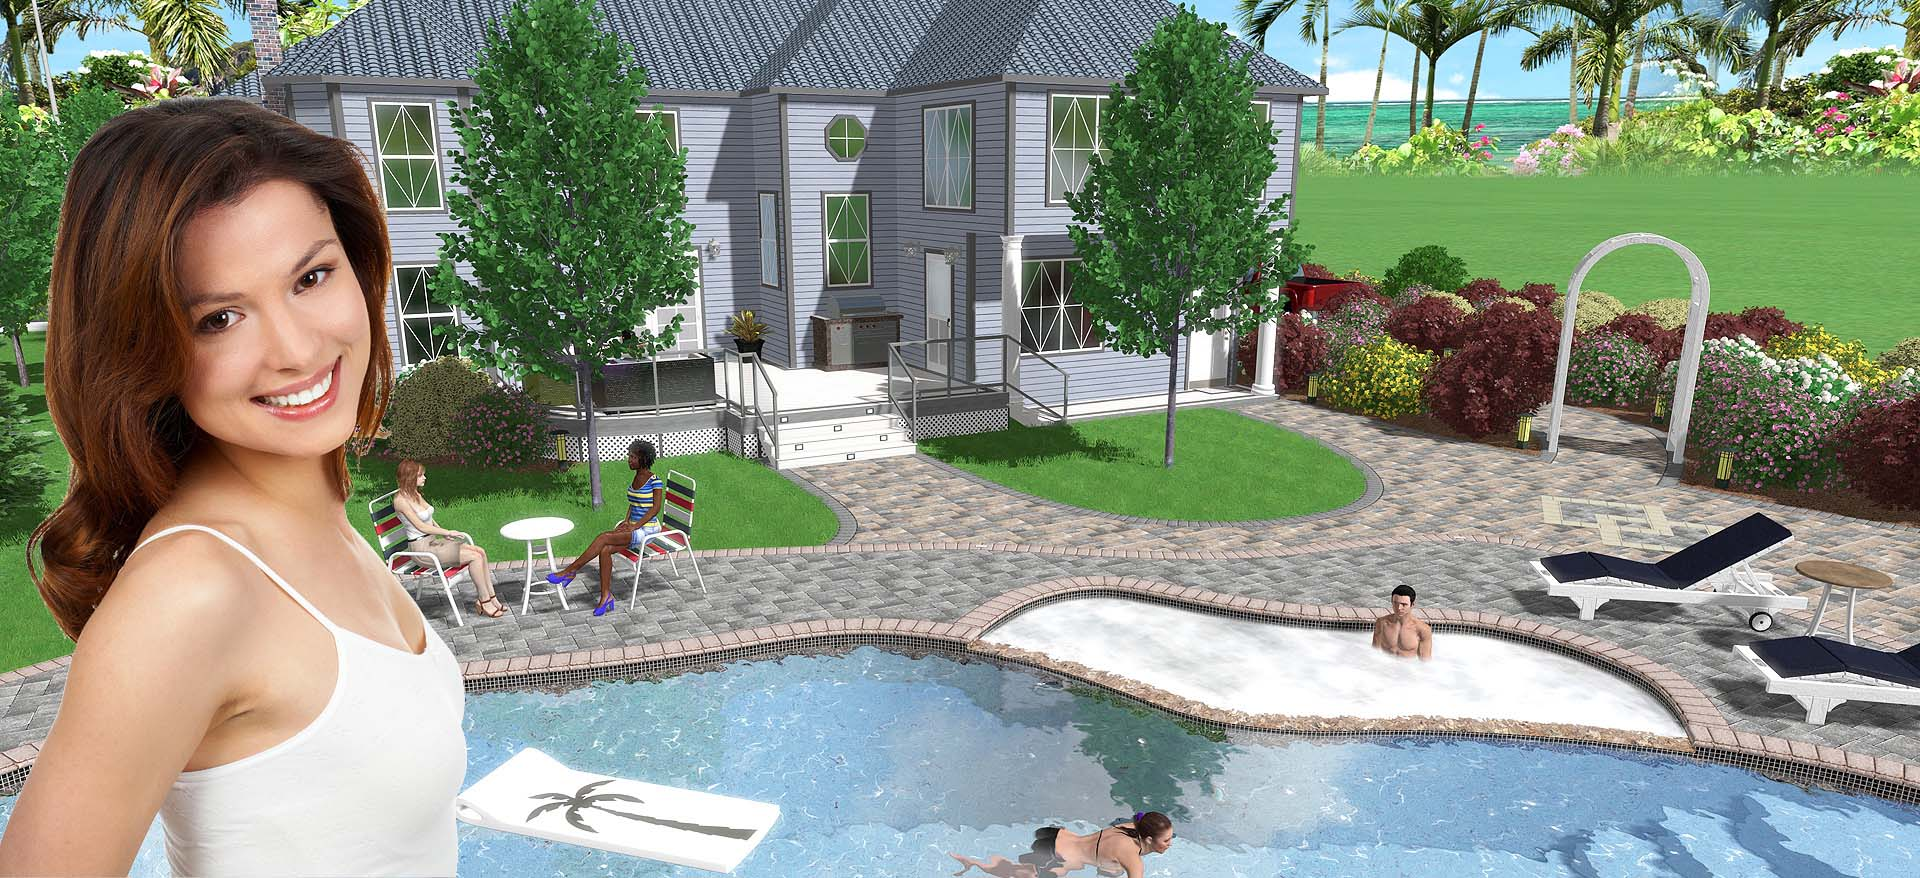 Landscape design software 3d landscaping software free for Pool design program